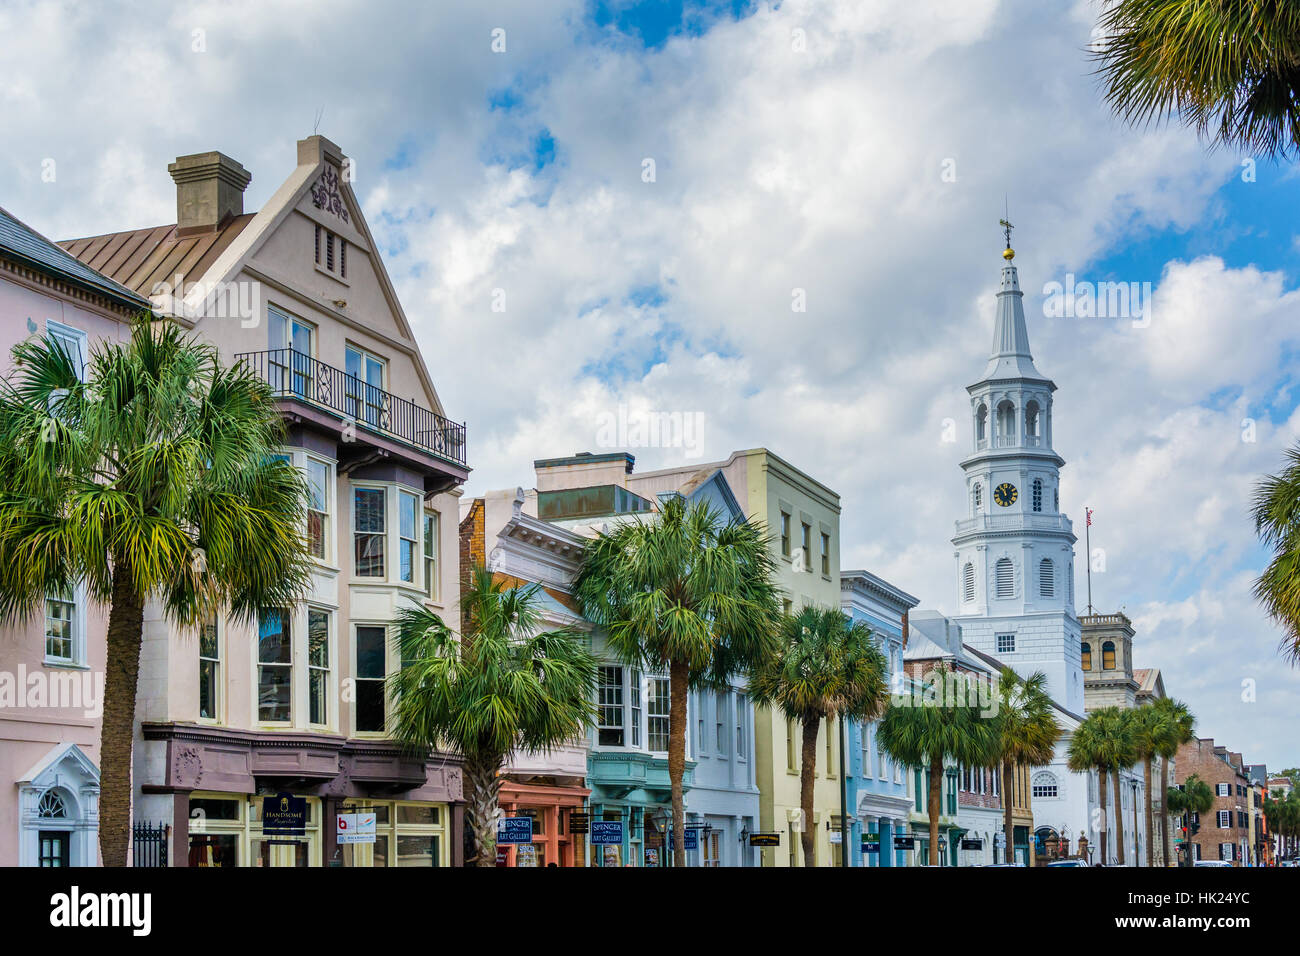 Buildings and palm trees along Broad Street, in Charleston, South Carolina. - Stock Image